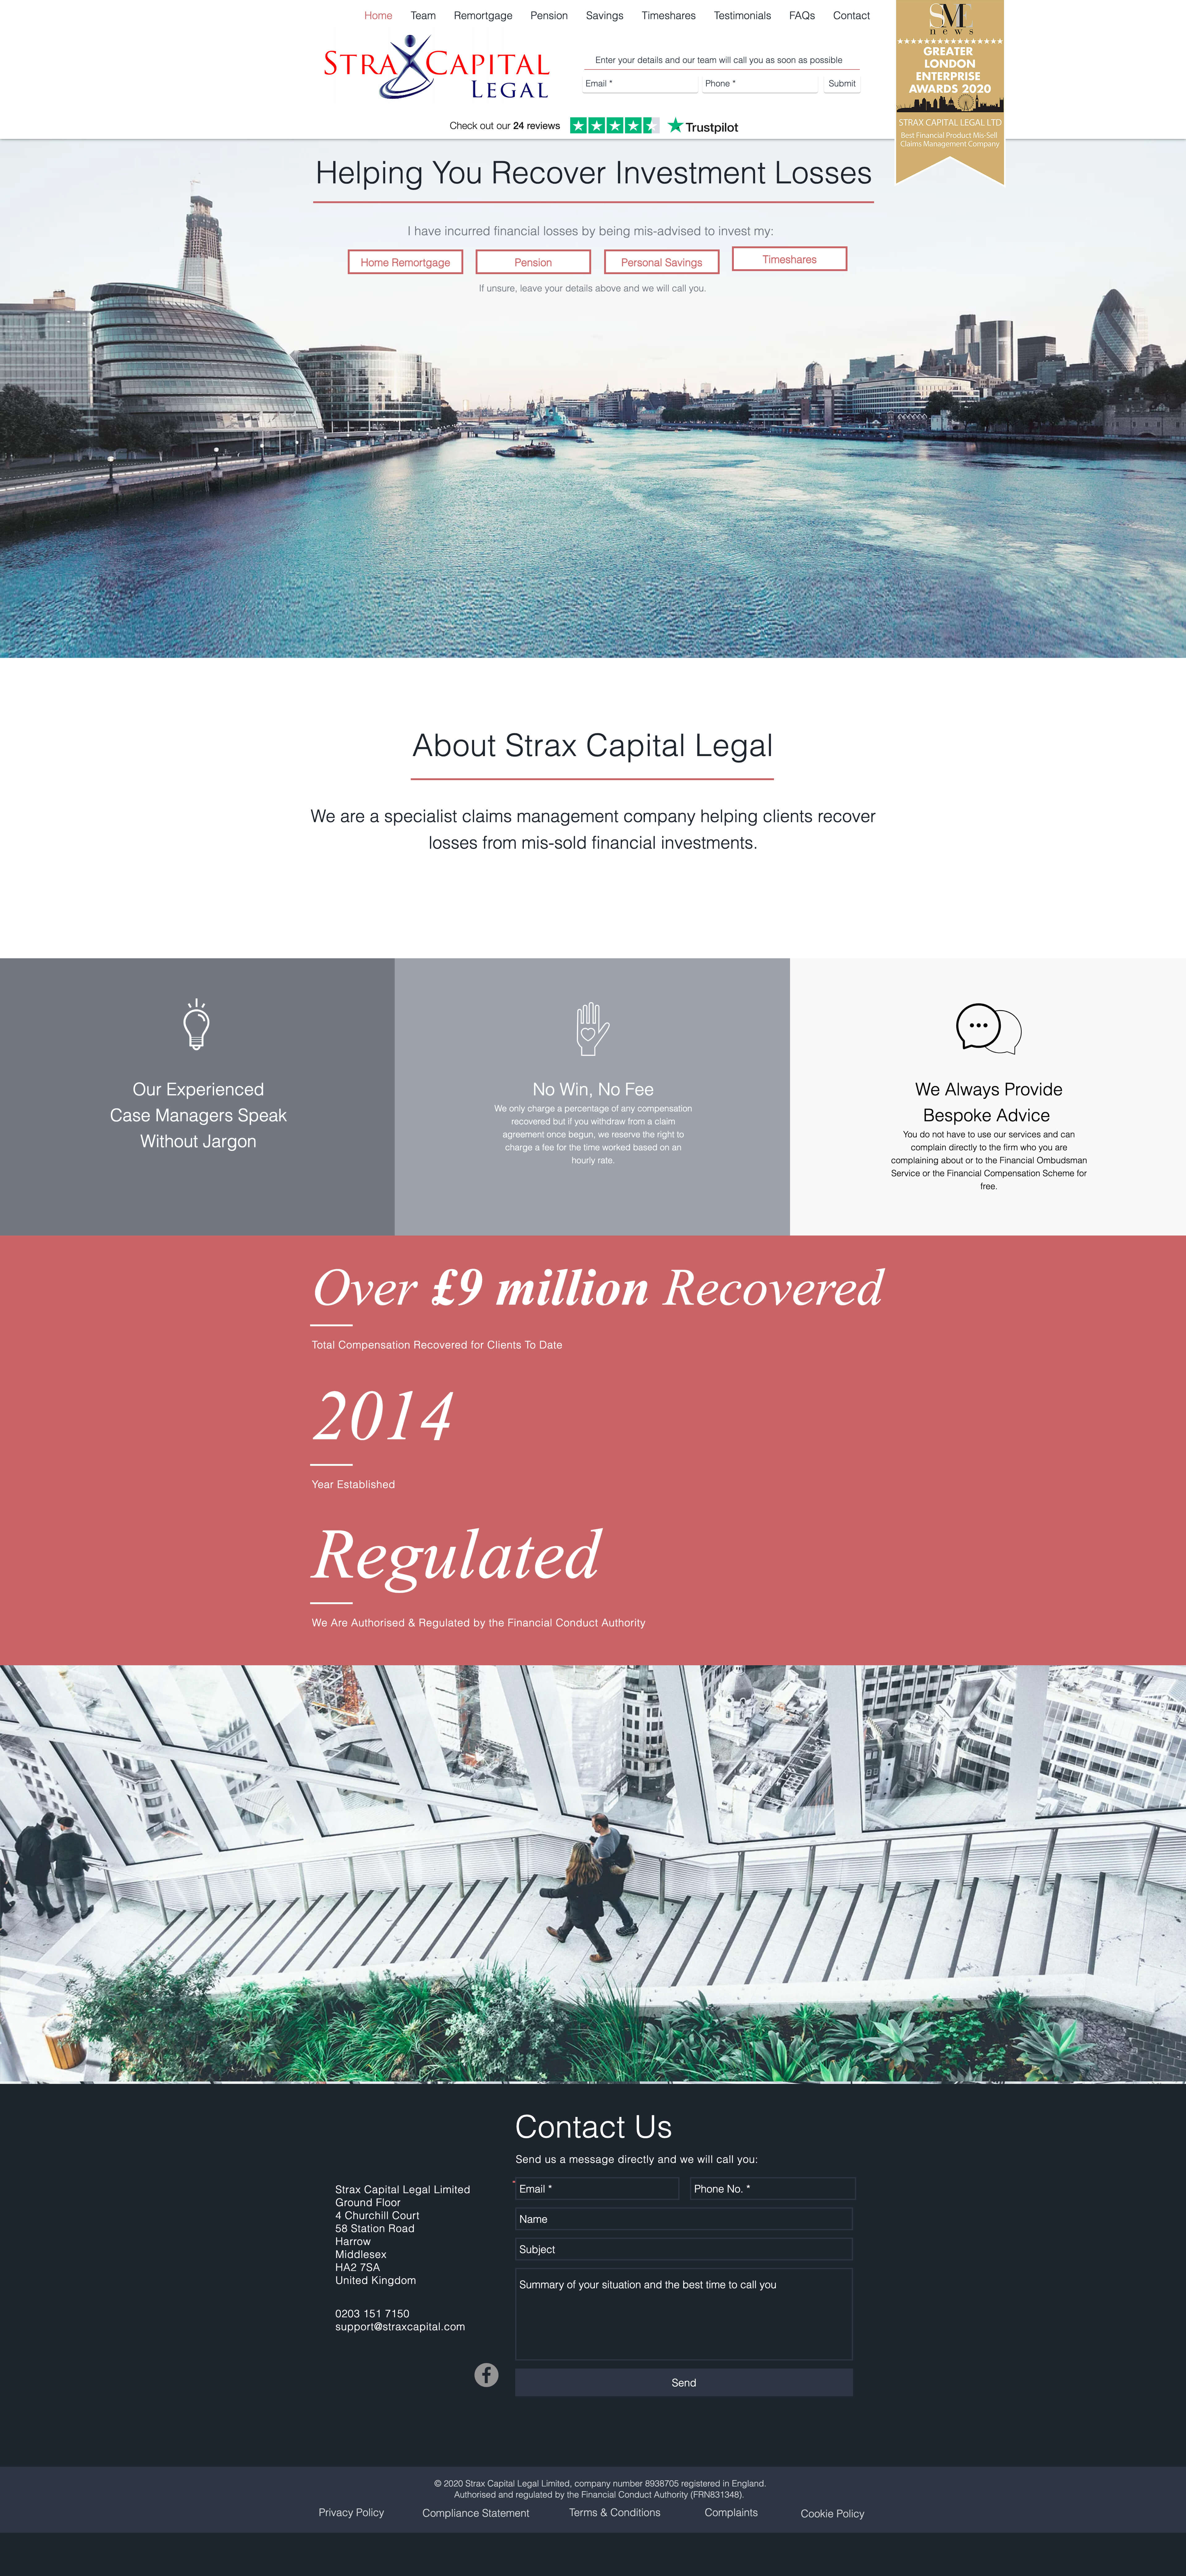 This is a screenshot from the Strax Capital website.